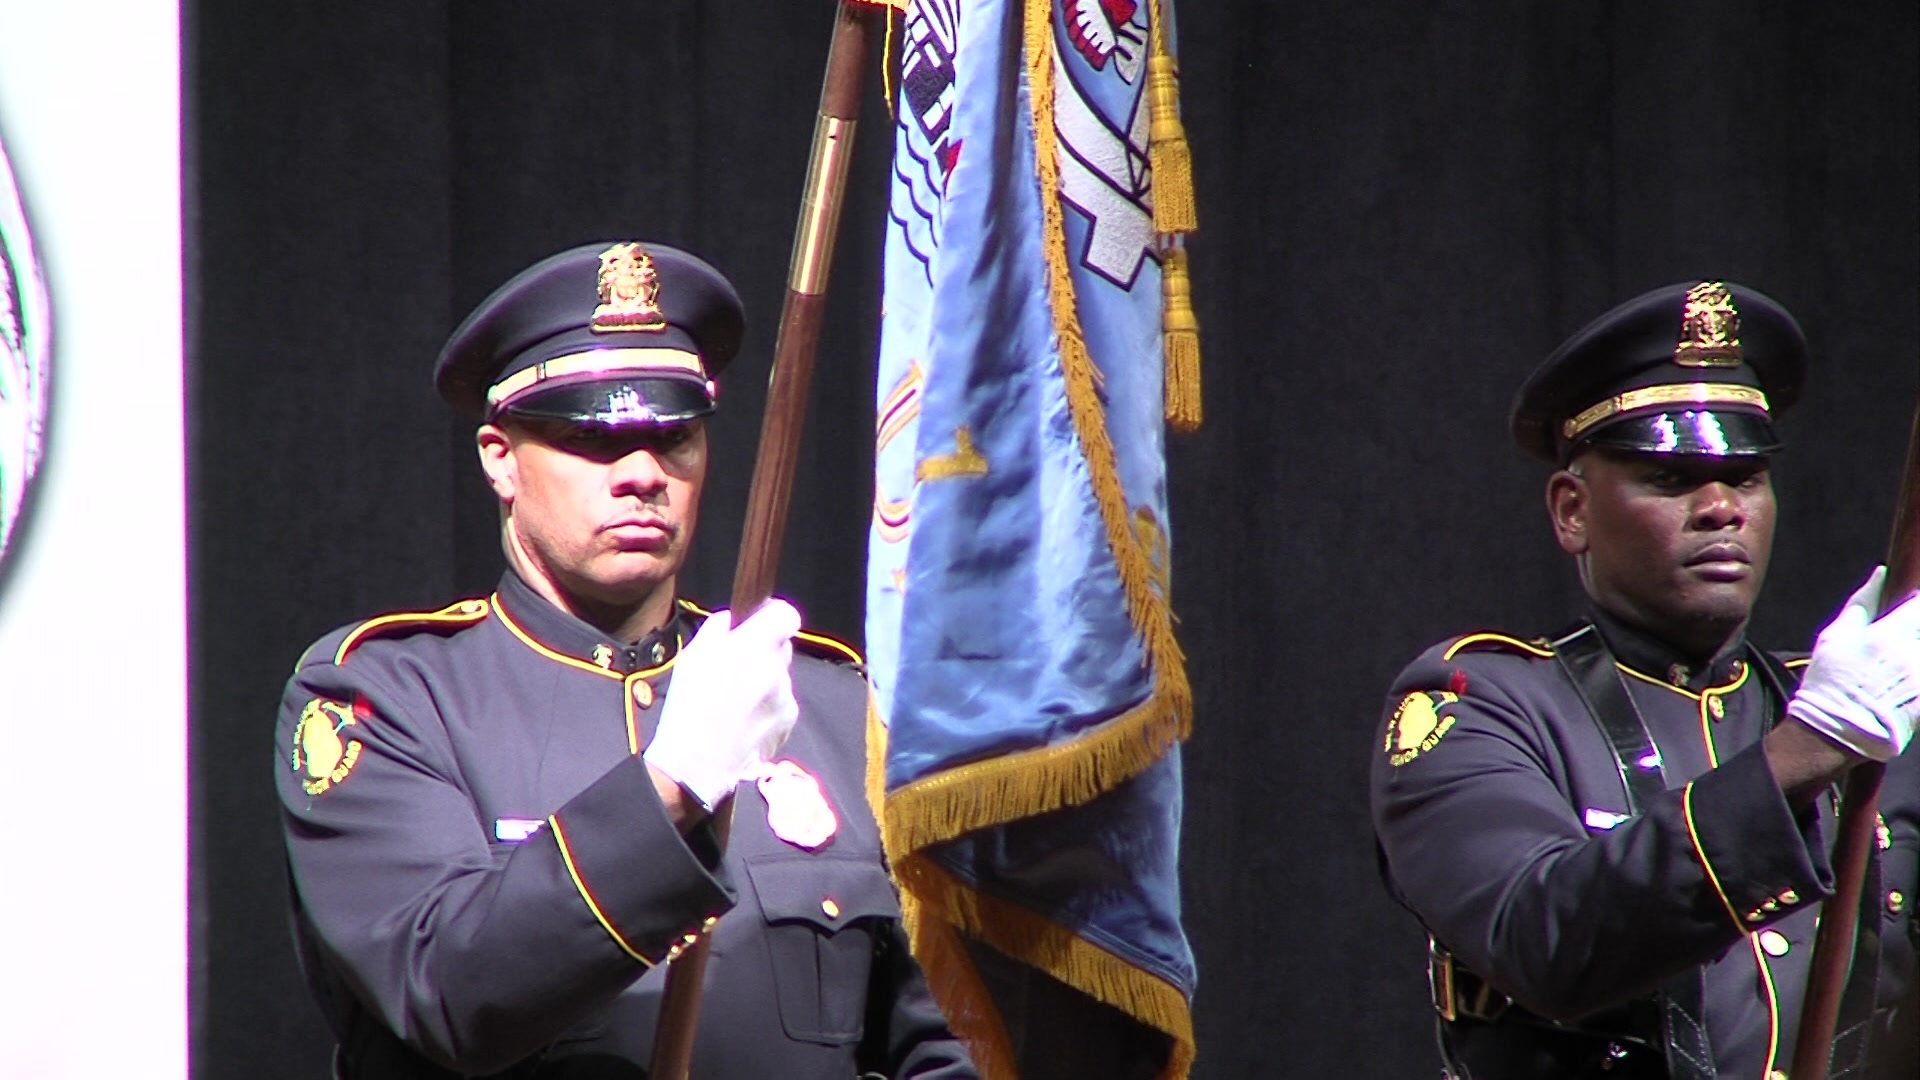 Matthew Rittner among MPD officers honored at Merit Awards